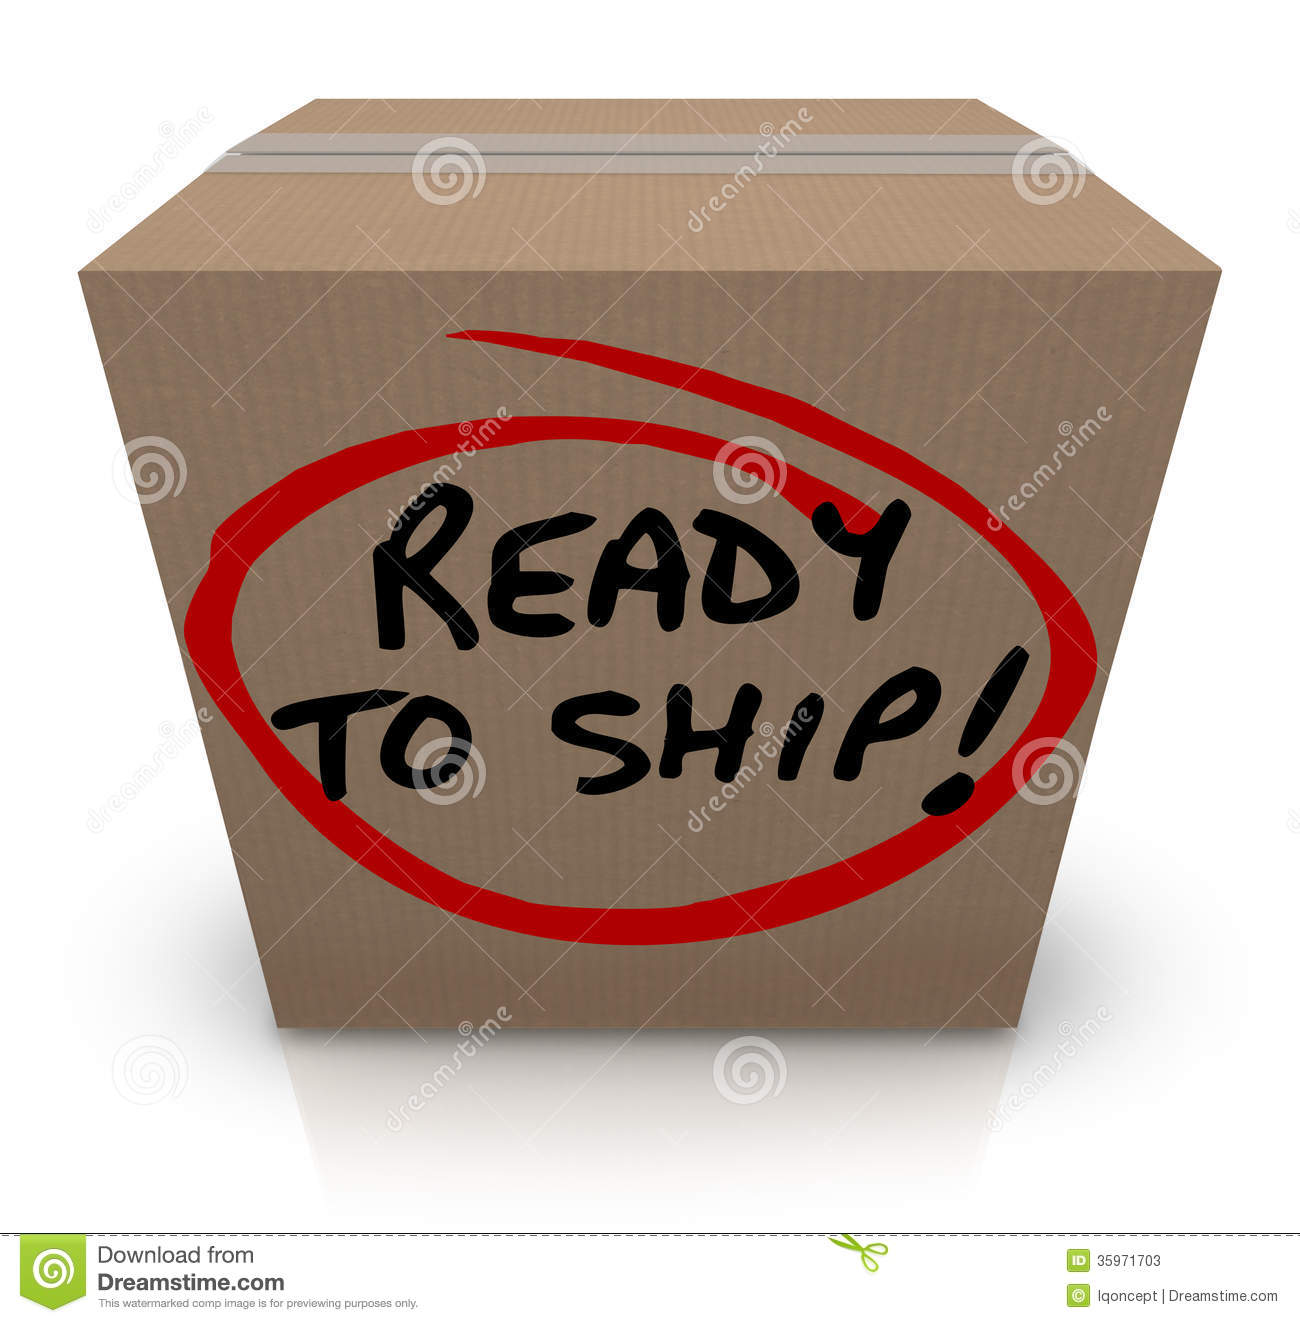 Stock Photos Ready To Ship Cardboard Box Mailing Package Order Stock Words Illustrate Product Goods Prepared Be Sent Image35971703 on electric generator map